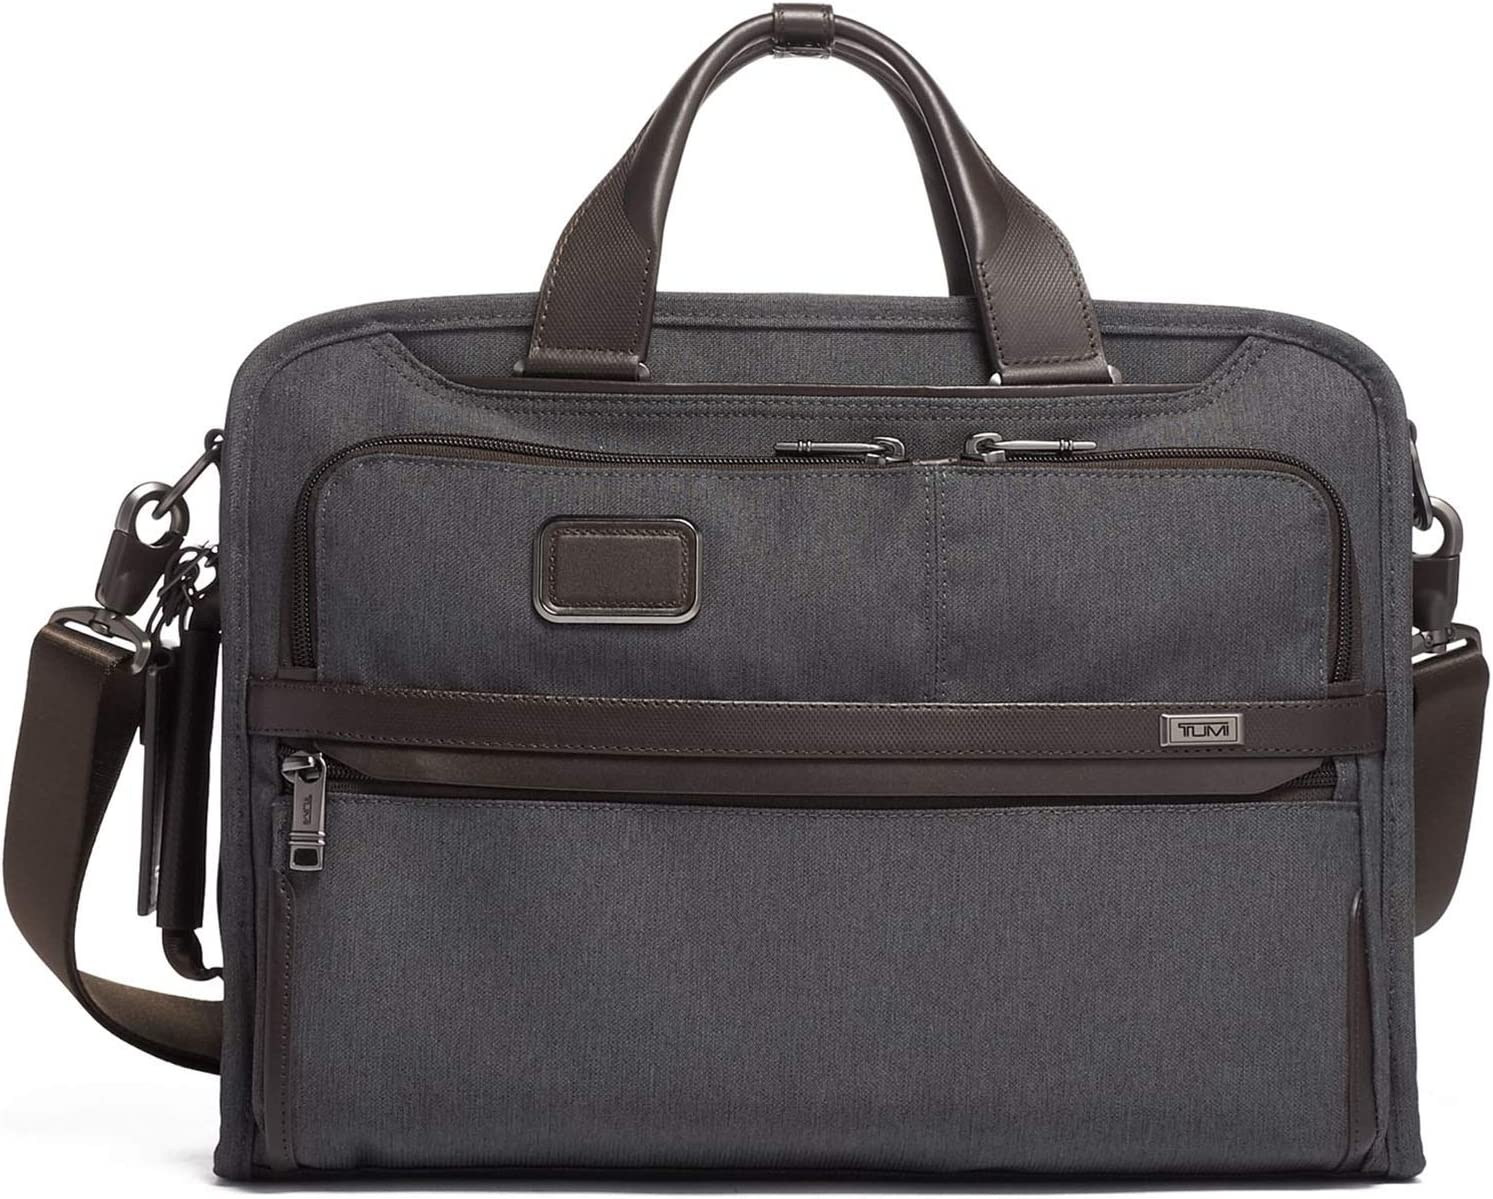 TUMI - Alpha 3 Slim Three Way Laptop Brief Briefcase - 15 Inch Computer Bag for Men and Women - Anthracite